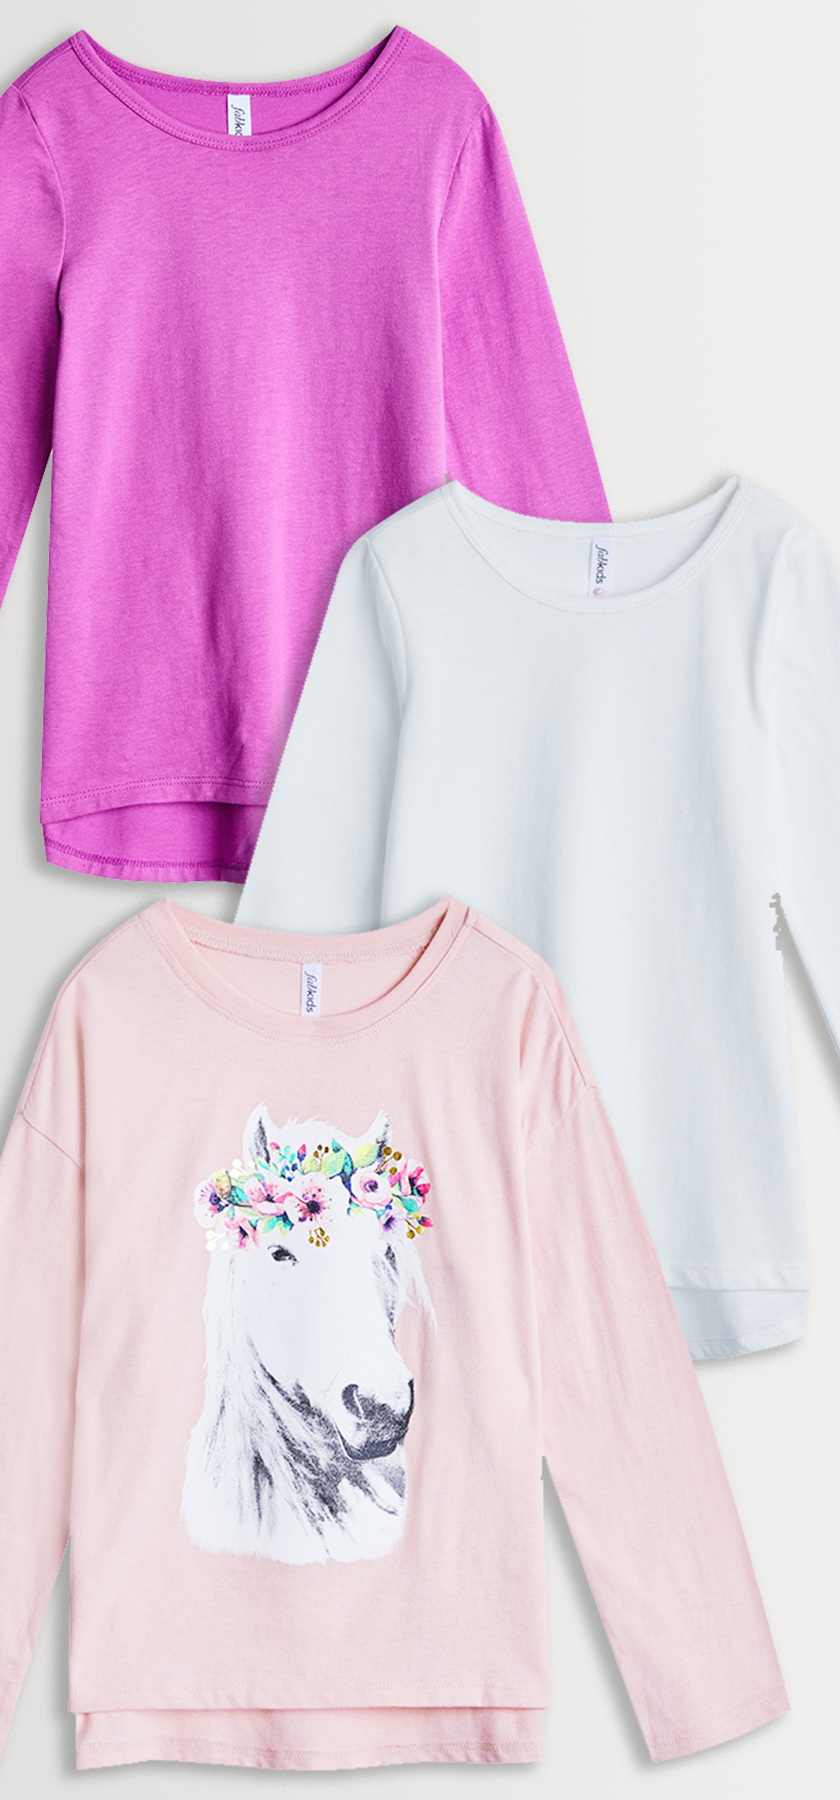 Flower crown horse tee 3 pack fabkids fabkidss standard terms of service regarding shipping returns and exchanges apply terms subject to change at any time without notice izmirmasajfo